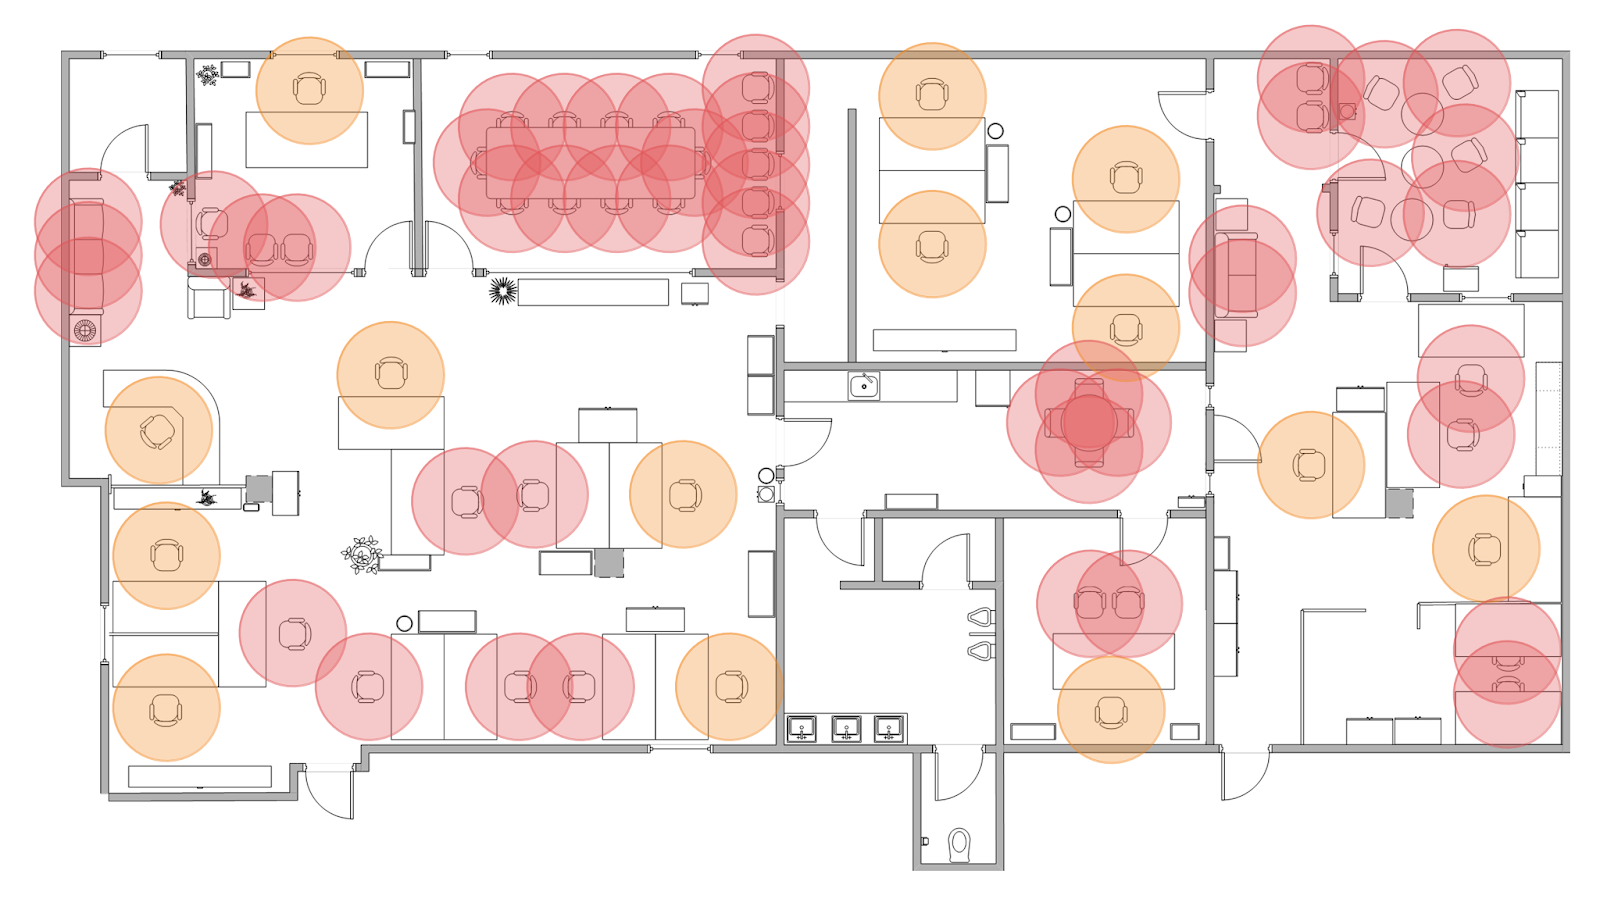 Build A Social Distancing Floor Plan In Tableau The Flerlage Twins Analytics Data Visualization And Tableau